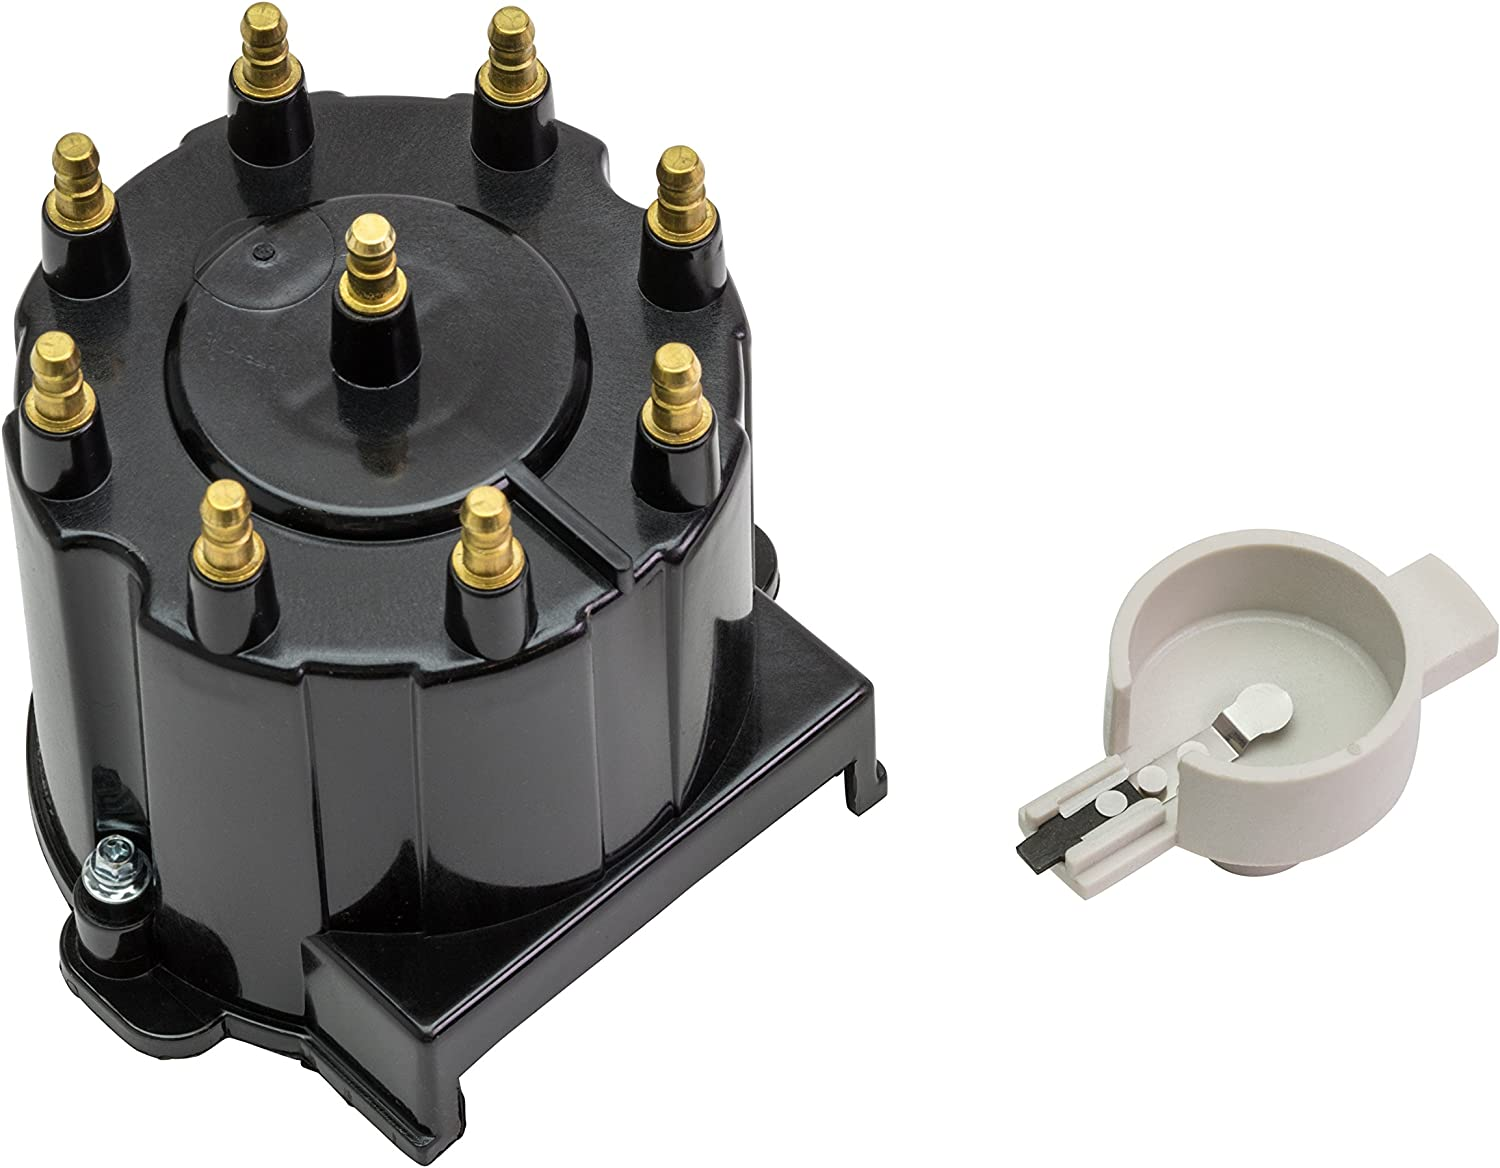 Quicksilver 808483Q1 Distributor Cap Kit - V-8 Free Shipping Cheap Bargain Gift Marinized Engines New color